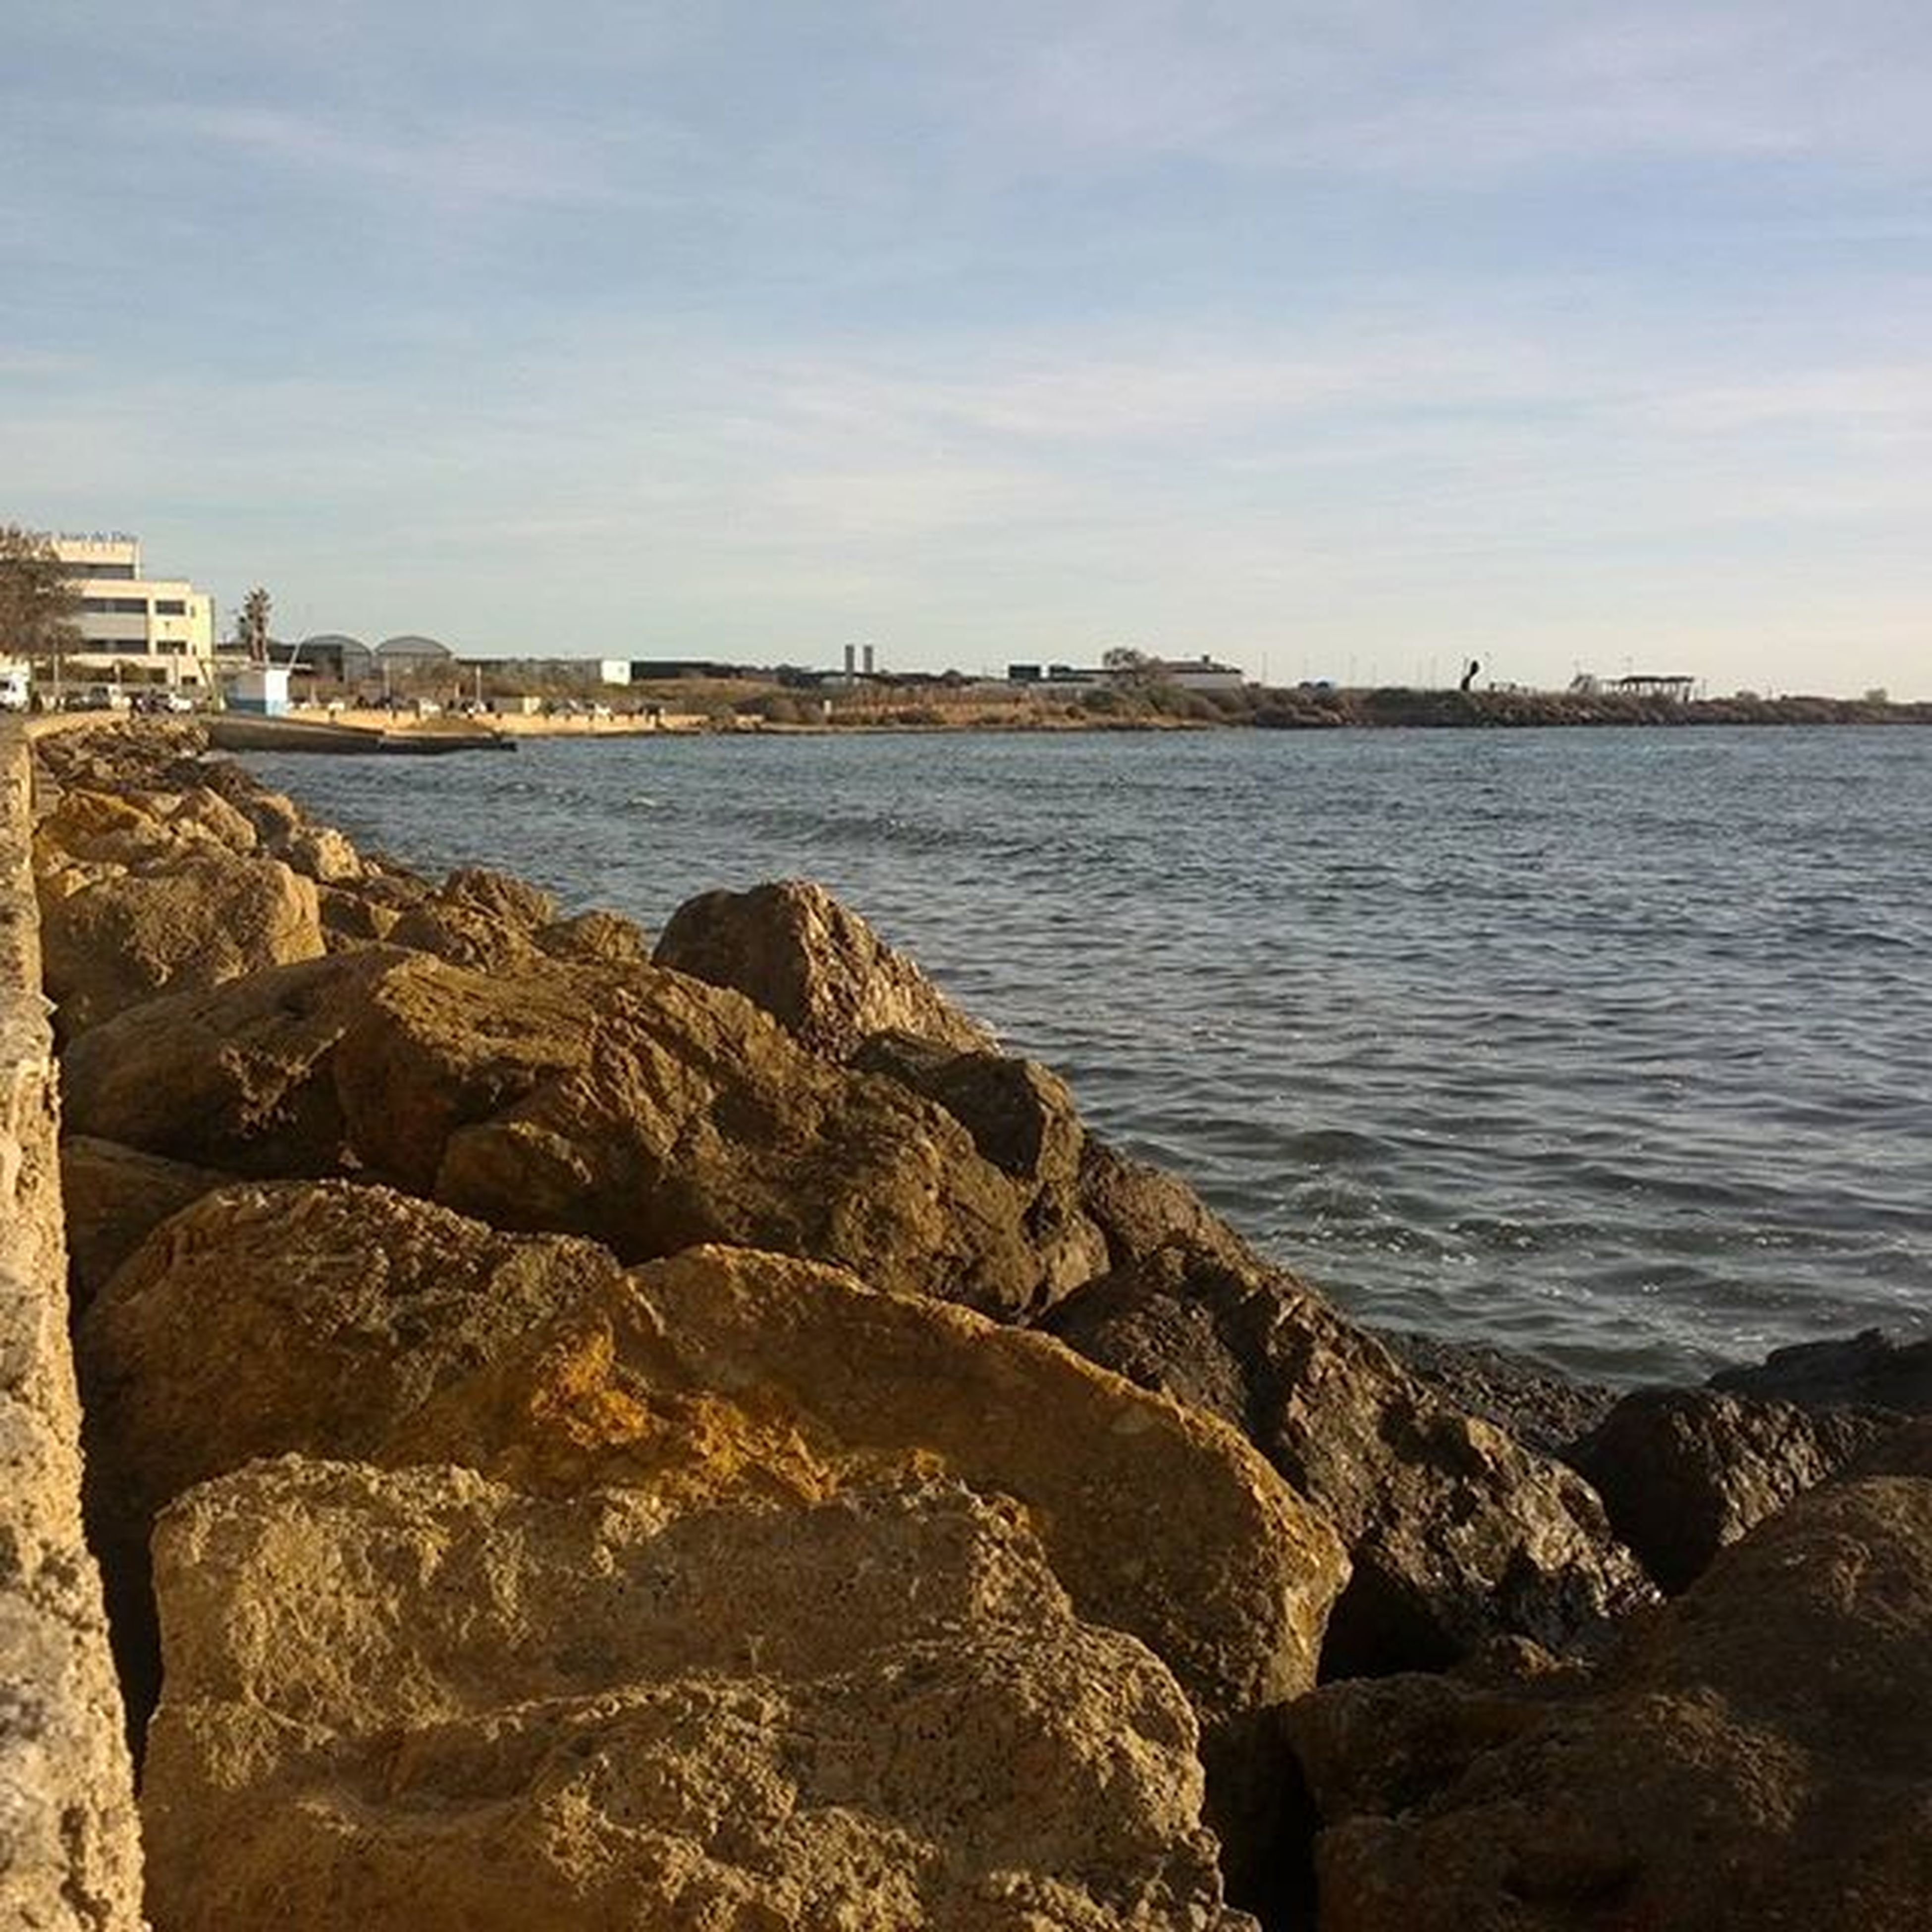 water, sea, architecture, building exterior, built structure, sky, city, cityscape, rock - object, river, cloud - sky, nature, coastline, day, scenics, shore, outdoors, cloud, no people, tranquility